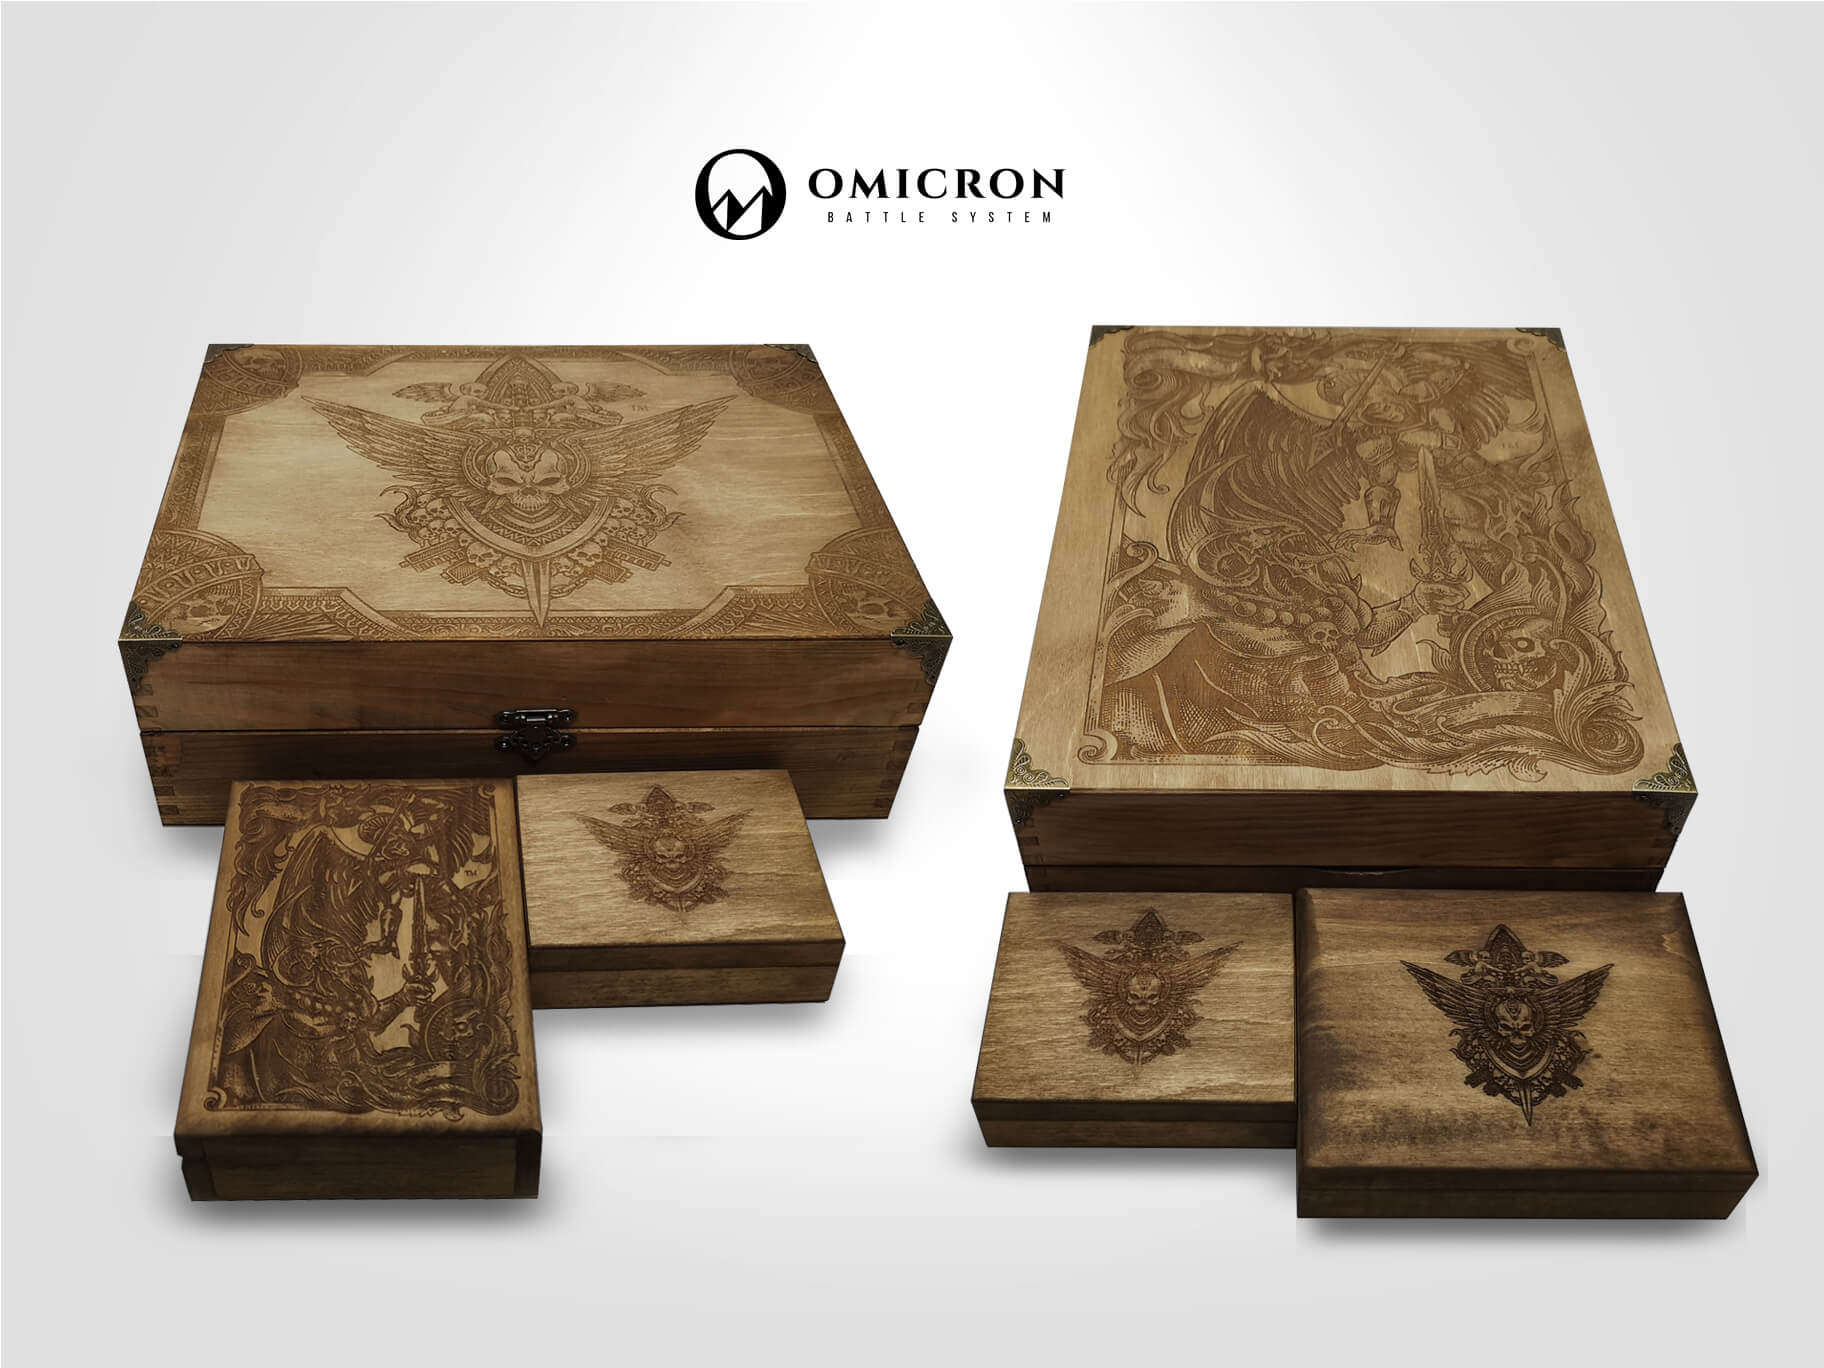 OMICRON Battle System - Organize Your Chaos in Style 8